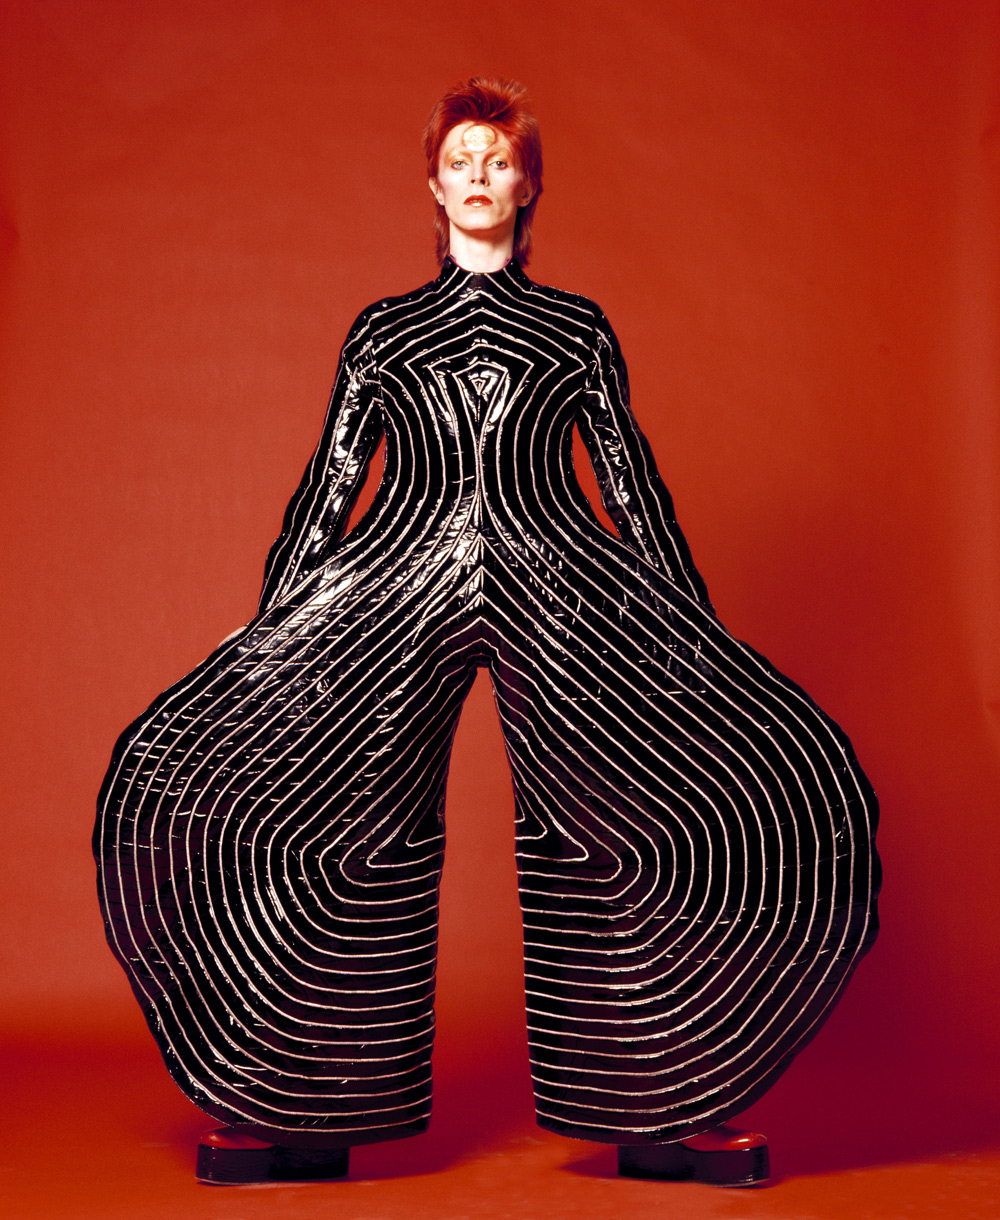 Striped_bodysuit_for_Aladdin_Sane_tour_1973_Design_by_Kansai_Yamamoto_Photograph_by_Masayoshi_Sukita__Sukita_The_David_Bowie_Archive_2012.jpg